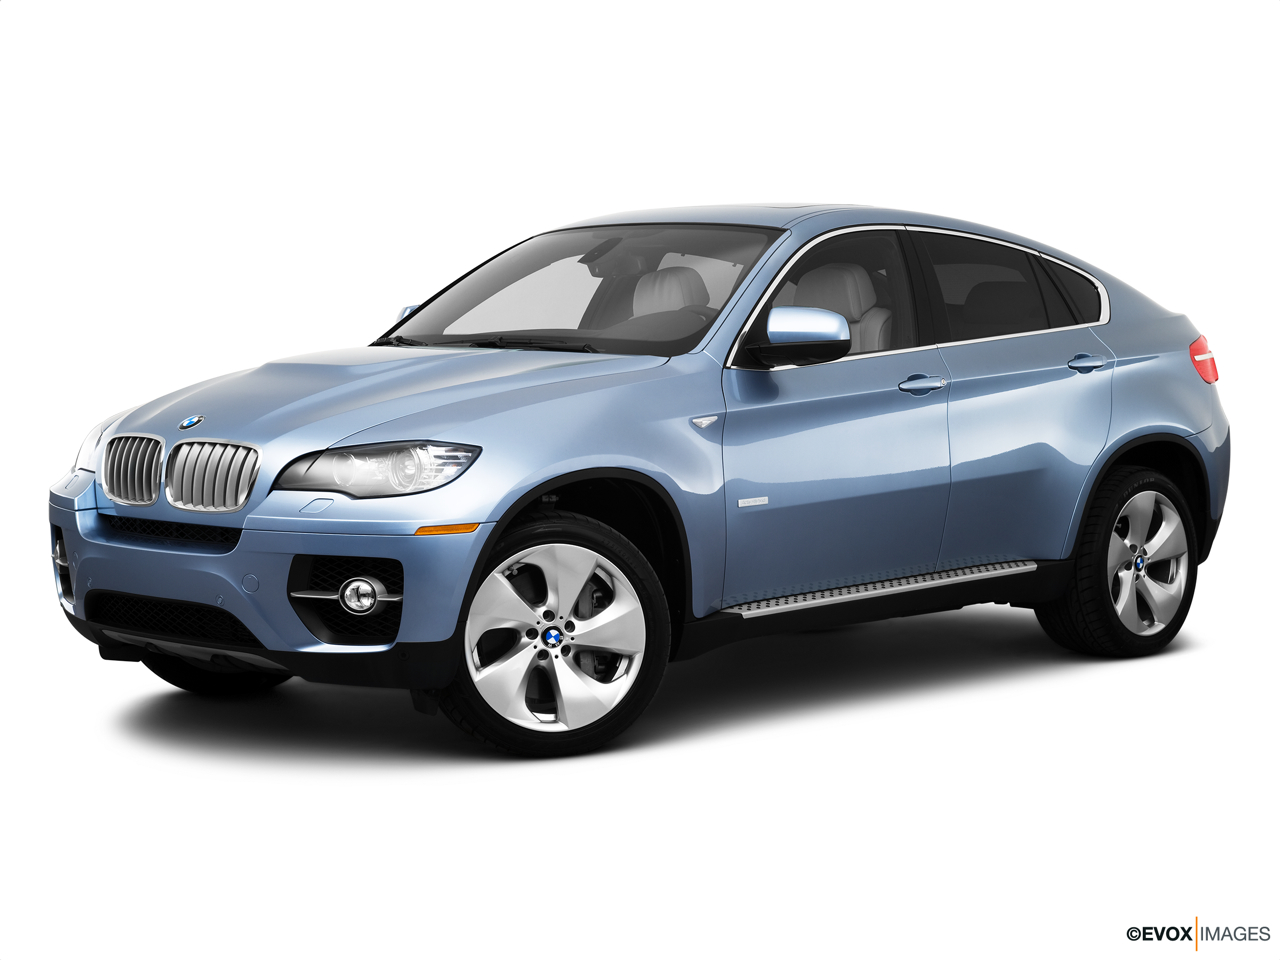 2010 BMW X6 Hybrid Base 047 - no description